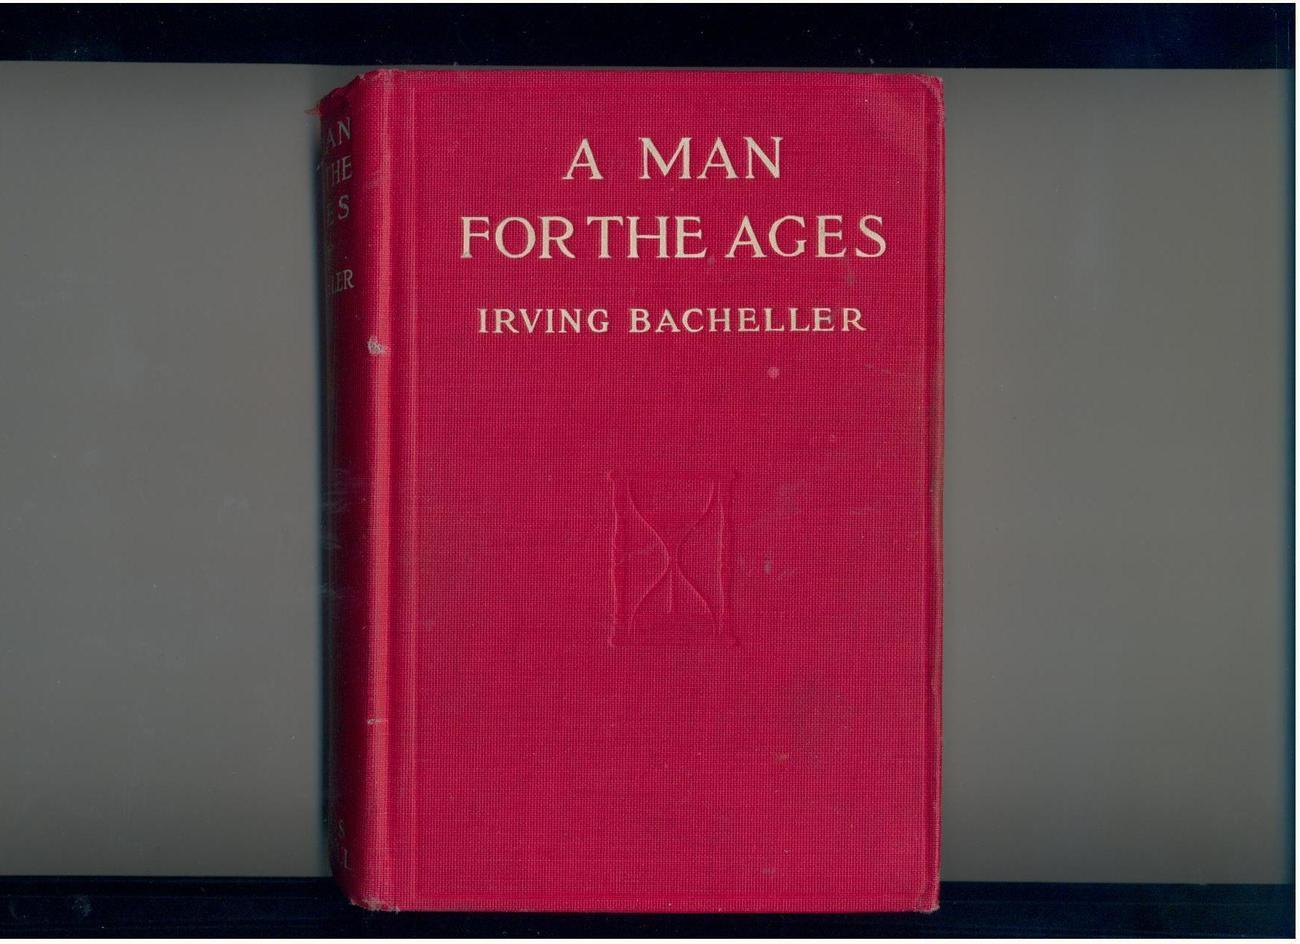 Bacheller - A MAN FOR THE AGES - vintage novel about Lincoln